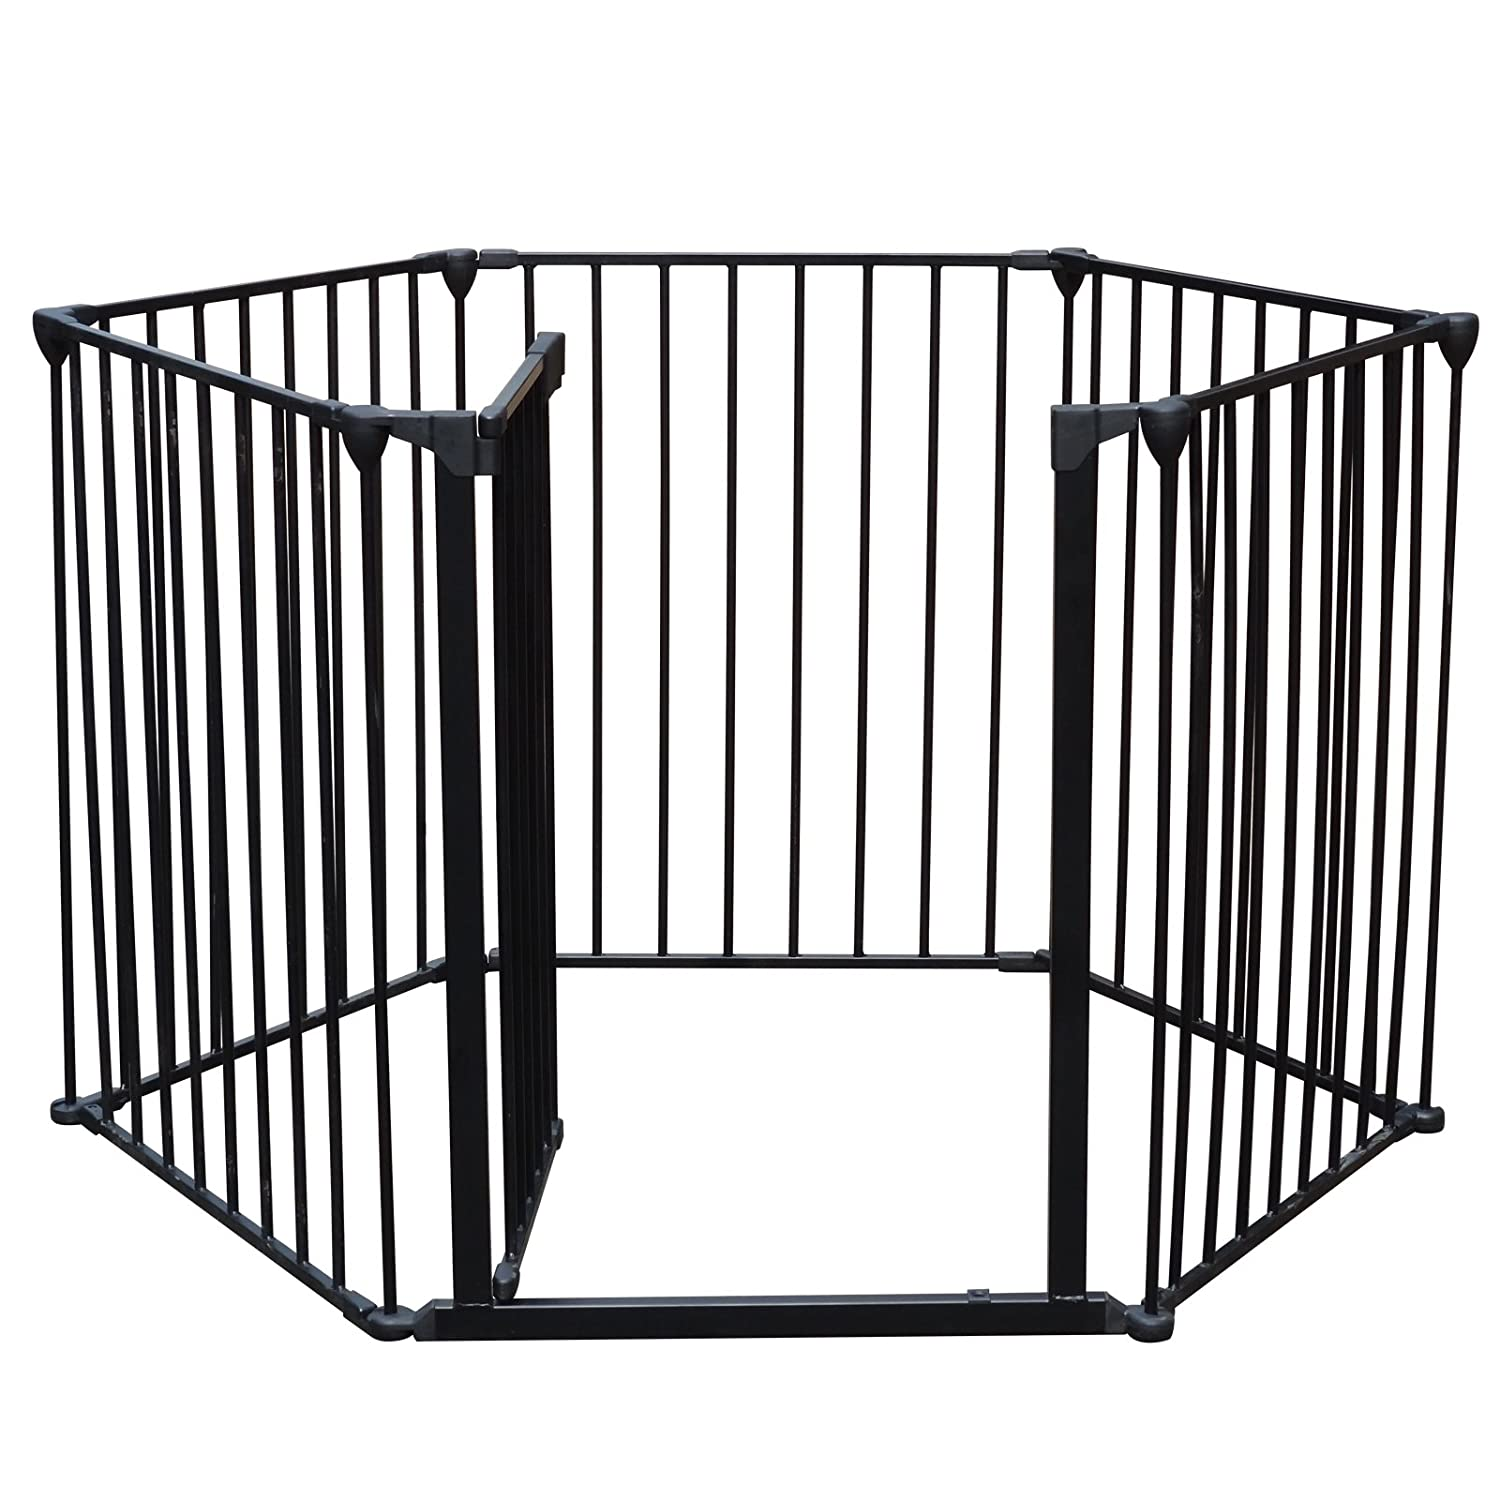 amazon com firstwell baby pet dog cat safety fireplace fence